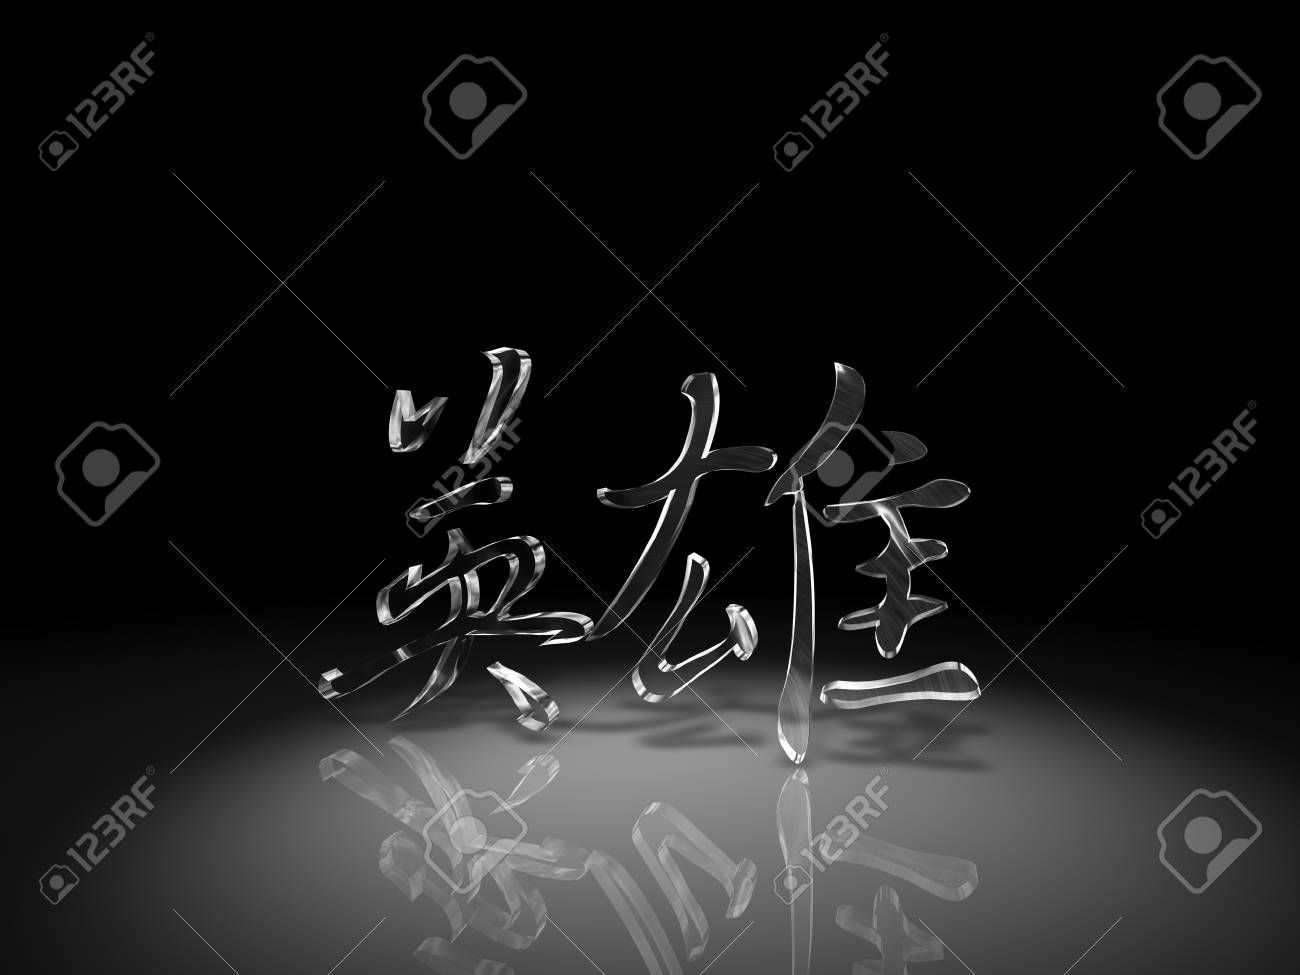 3d Symbol Chinese For Hero Stock Photo Picture And Royalty Free